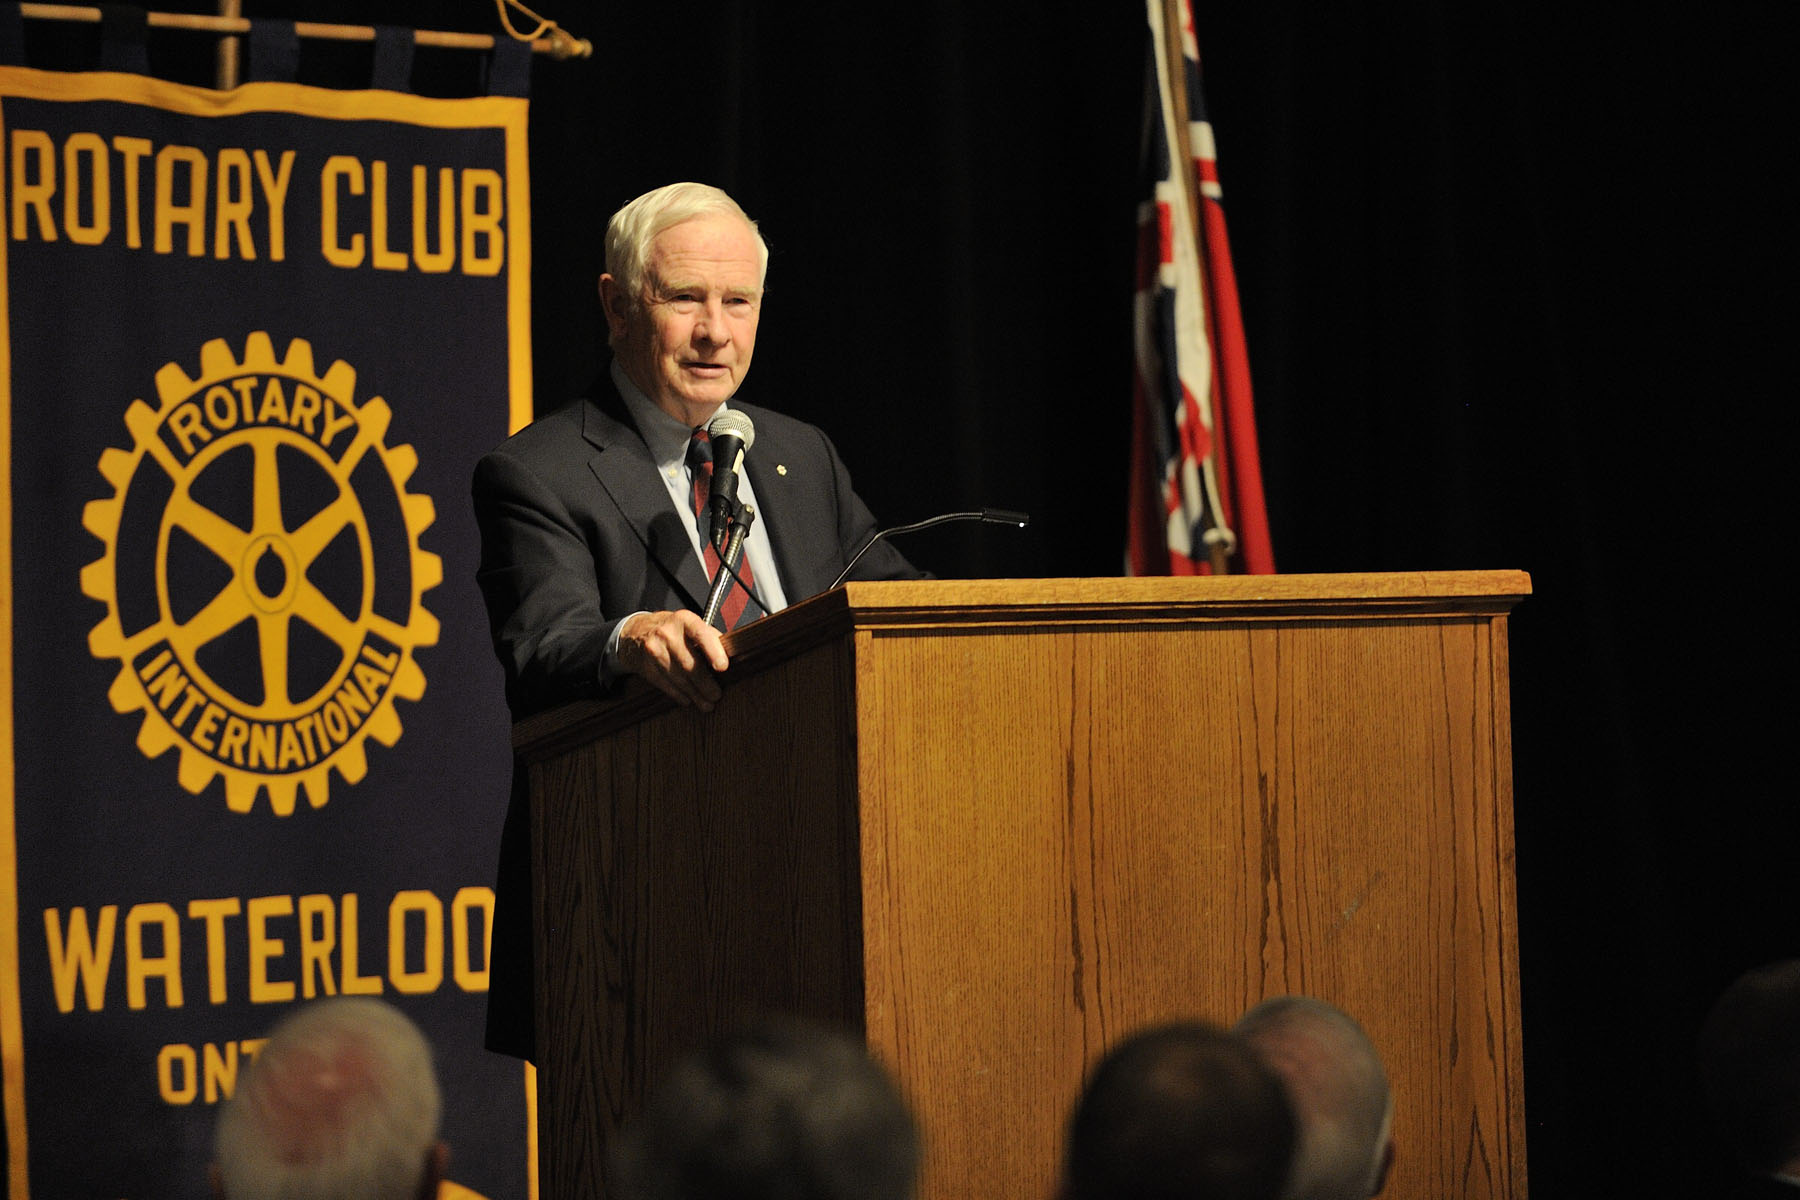 The Rotary Club of Waterloo is an organization of dedicated men and women who give freely of their time and talents to help those in need in the local and global community. It raises funds through various activities in the community that are donated to the many organizations they support. The Rotary Club of Waterloo was chartered in 1963.